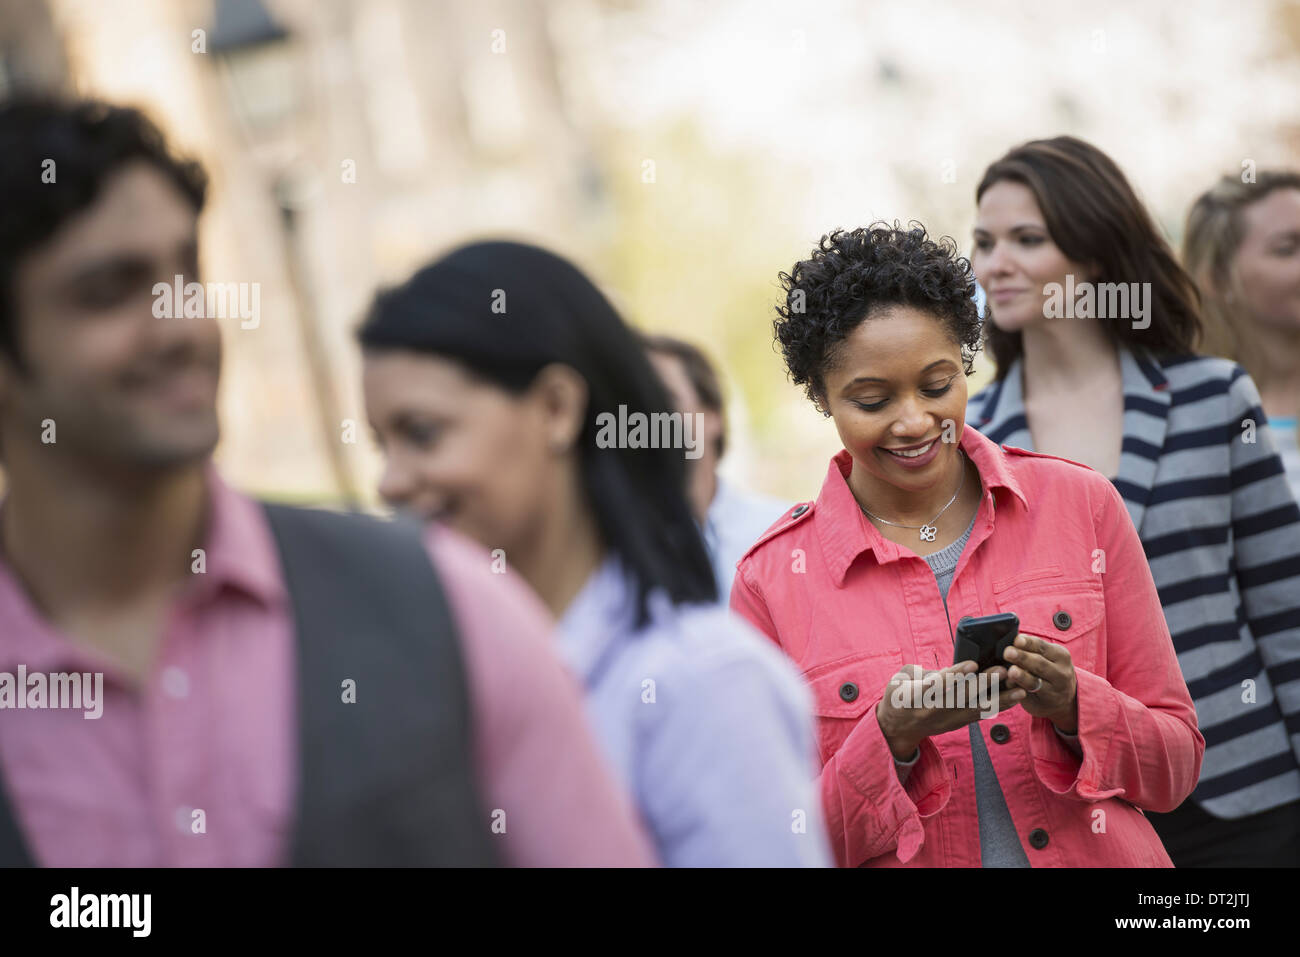 People outdoors in the city in spring time A woman standing among a group checking her cell phone - Stock Image